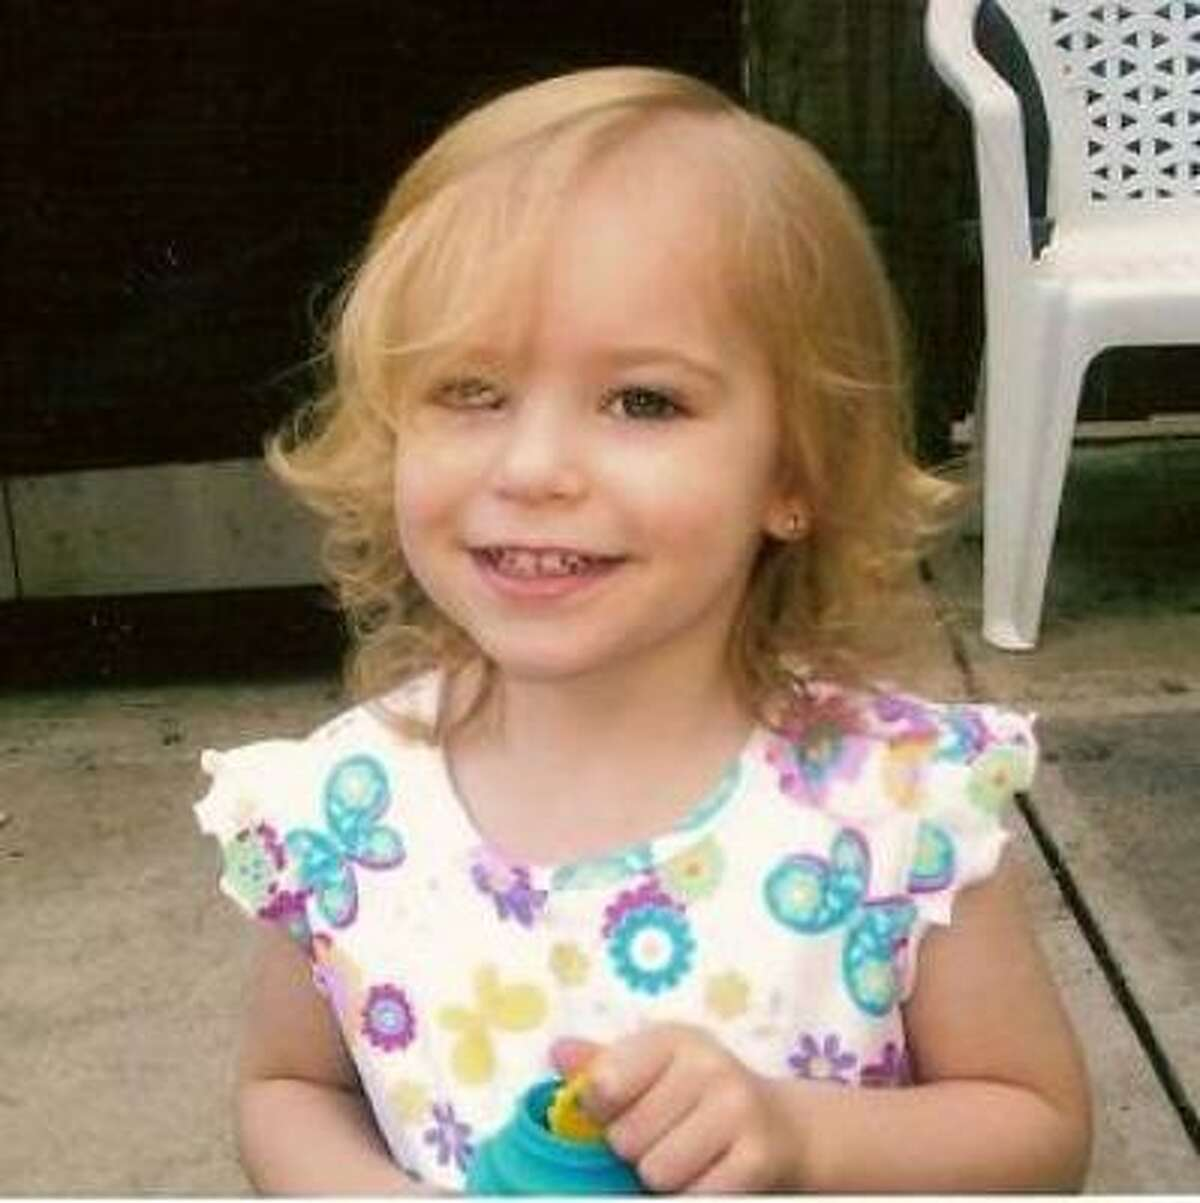 Riley Ann Sawyers, whose body washed ashore in a storage bin in Galveston Bay on Oct. 29.